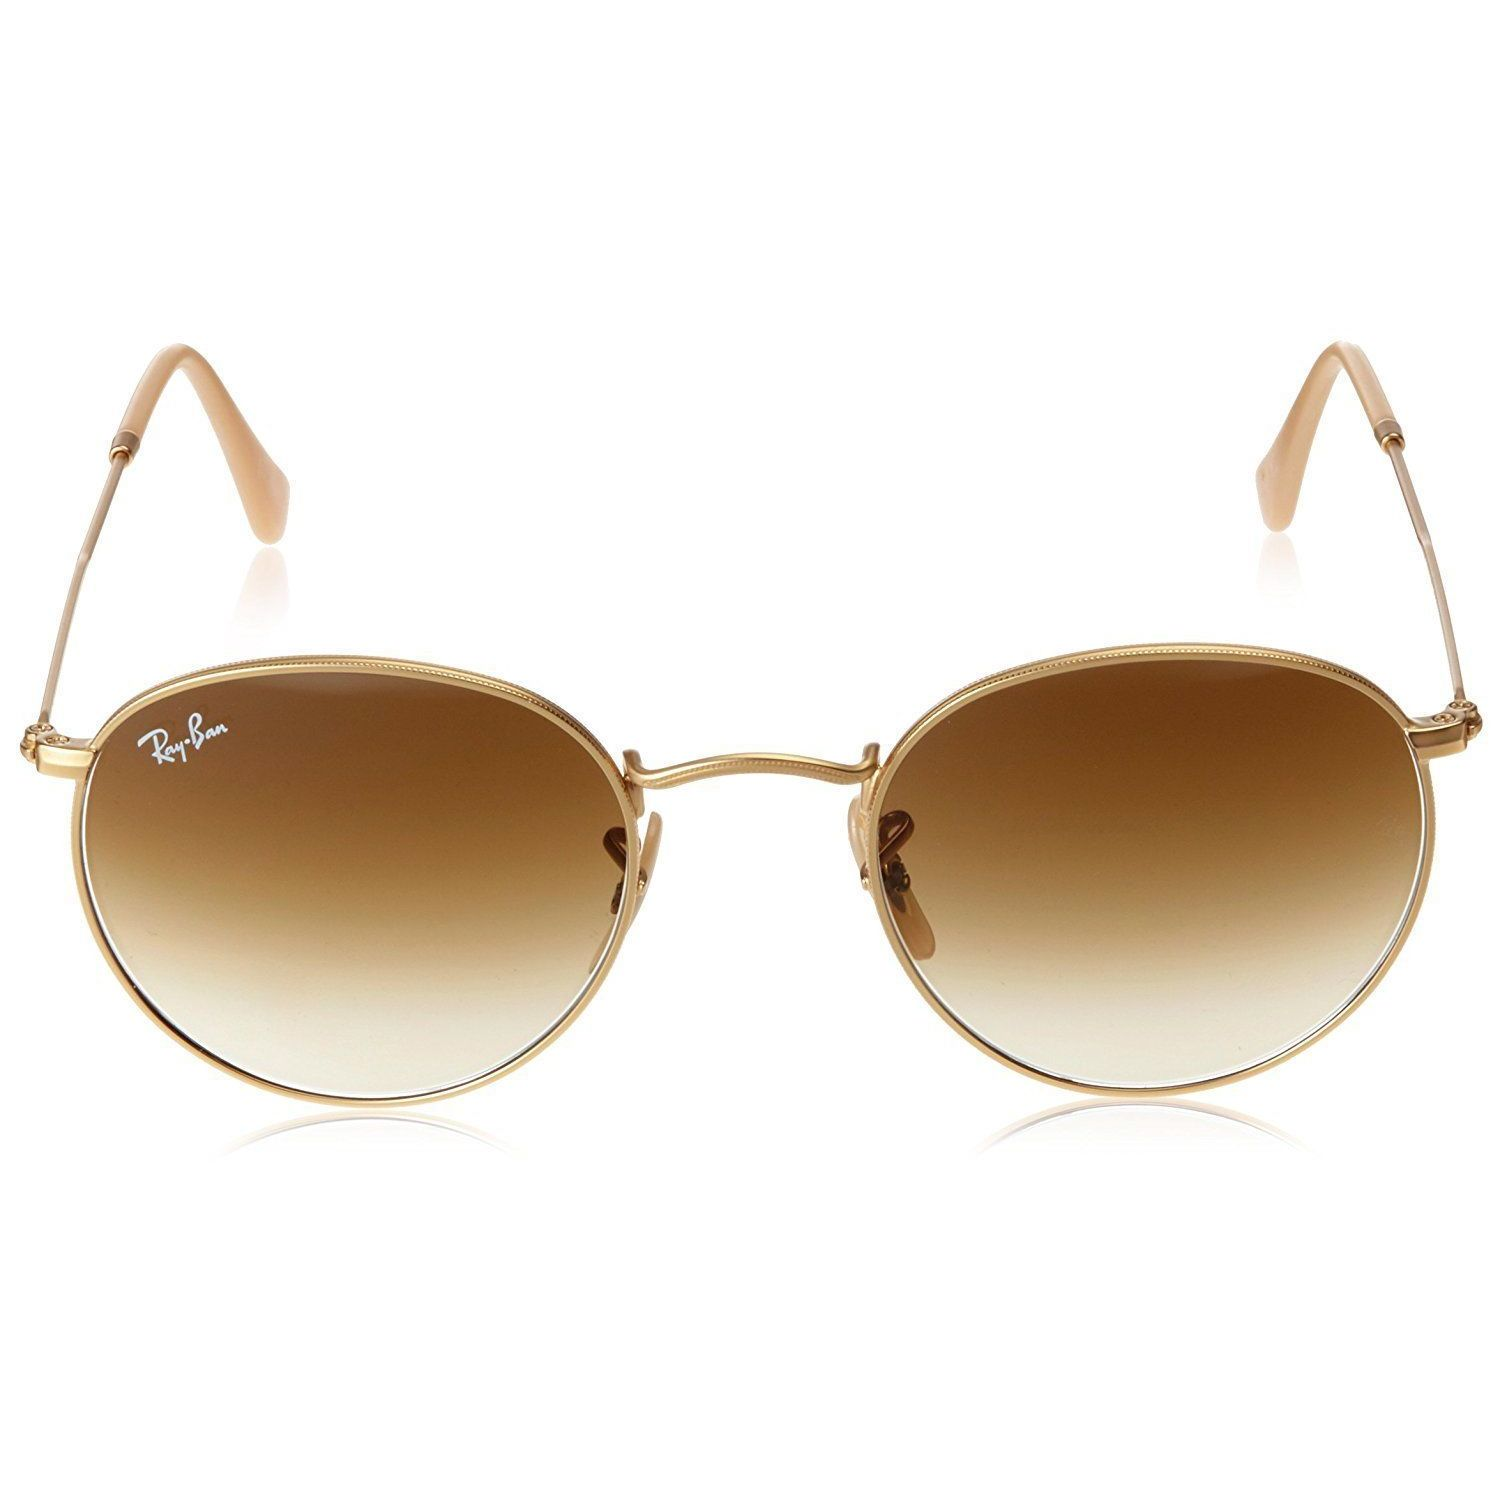 313c38c5dc Shop Ray-Ban RB3447 112 51 Unisex Round Gold Frame Light Brown Gradient  Lens Sunglasses - Ships To Canada - Overstock.ca - 15002899